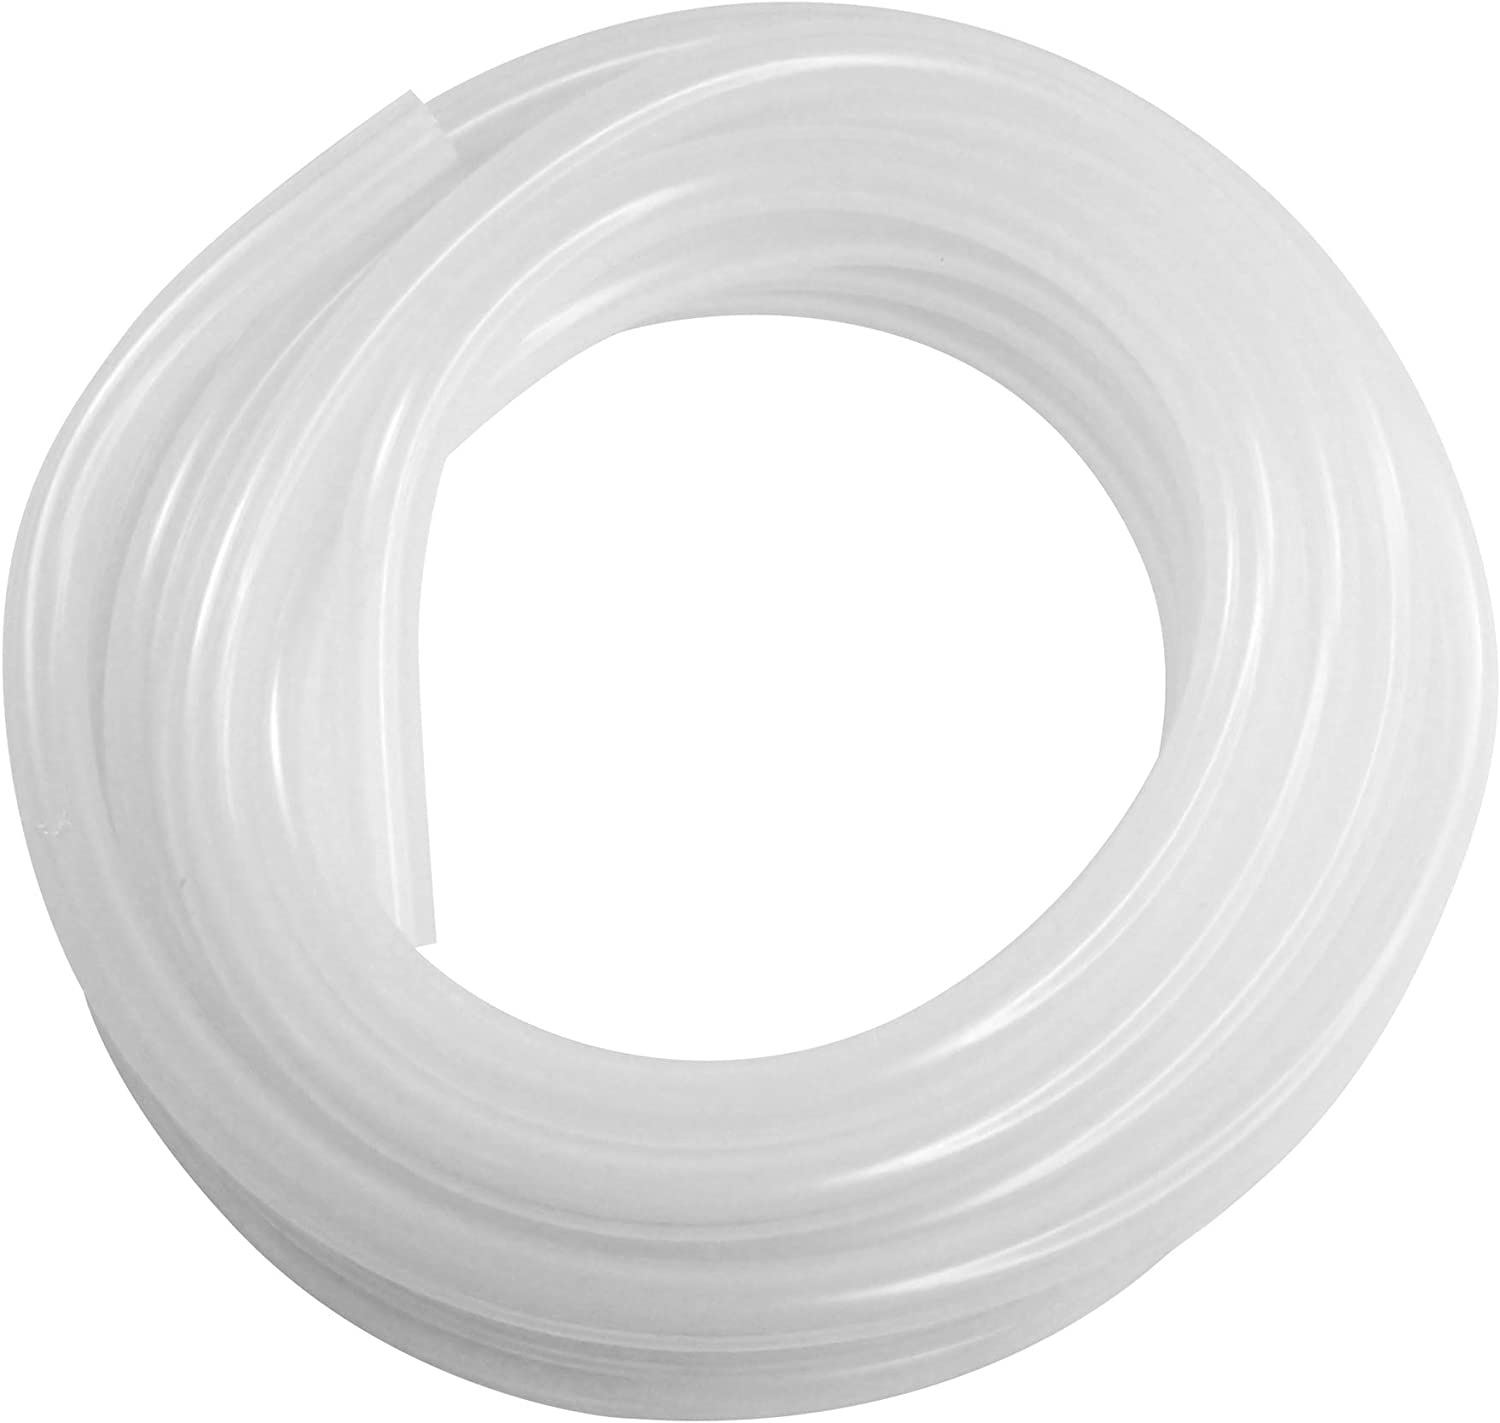 Luxury Silicone Tubing - Max 59% OFF 10 Foot Piece High 2